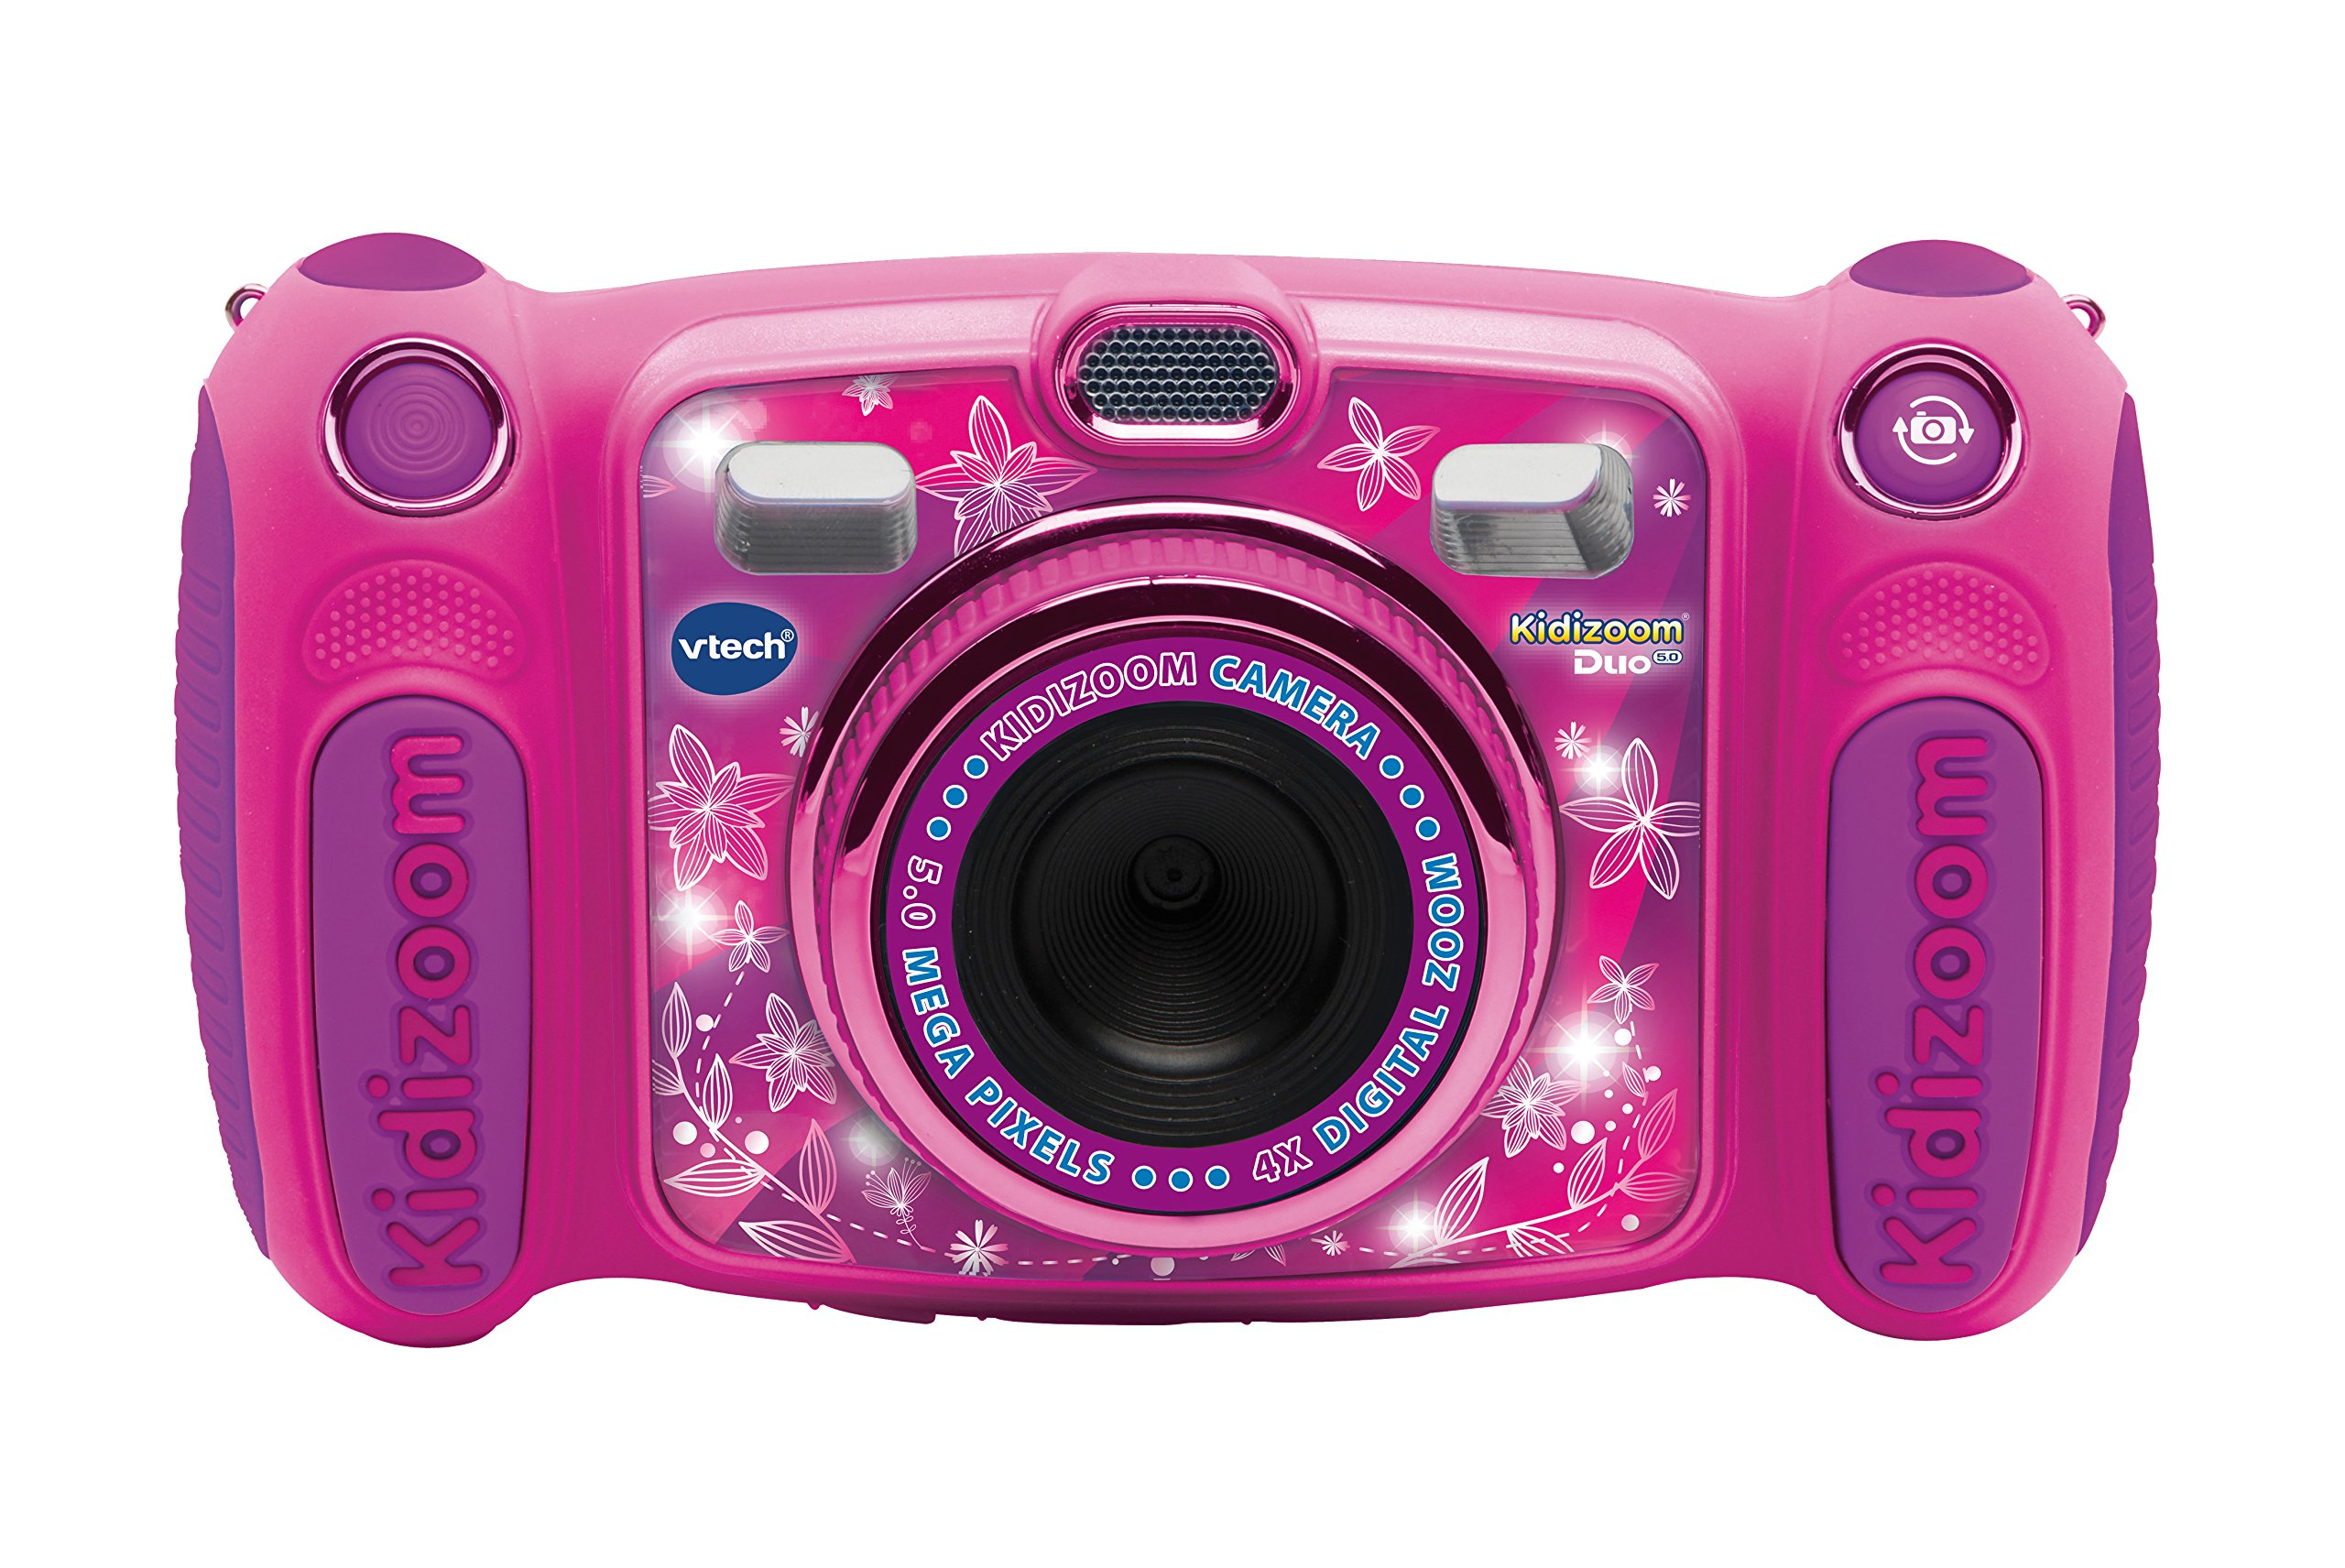 VTech - 507155 - Kidizoom Duo 5.0 - Rose product image